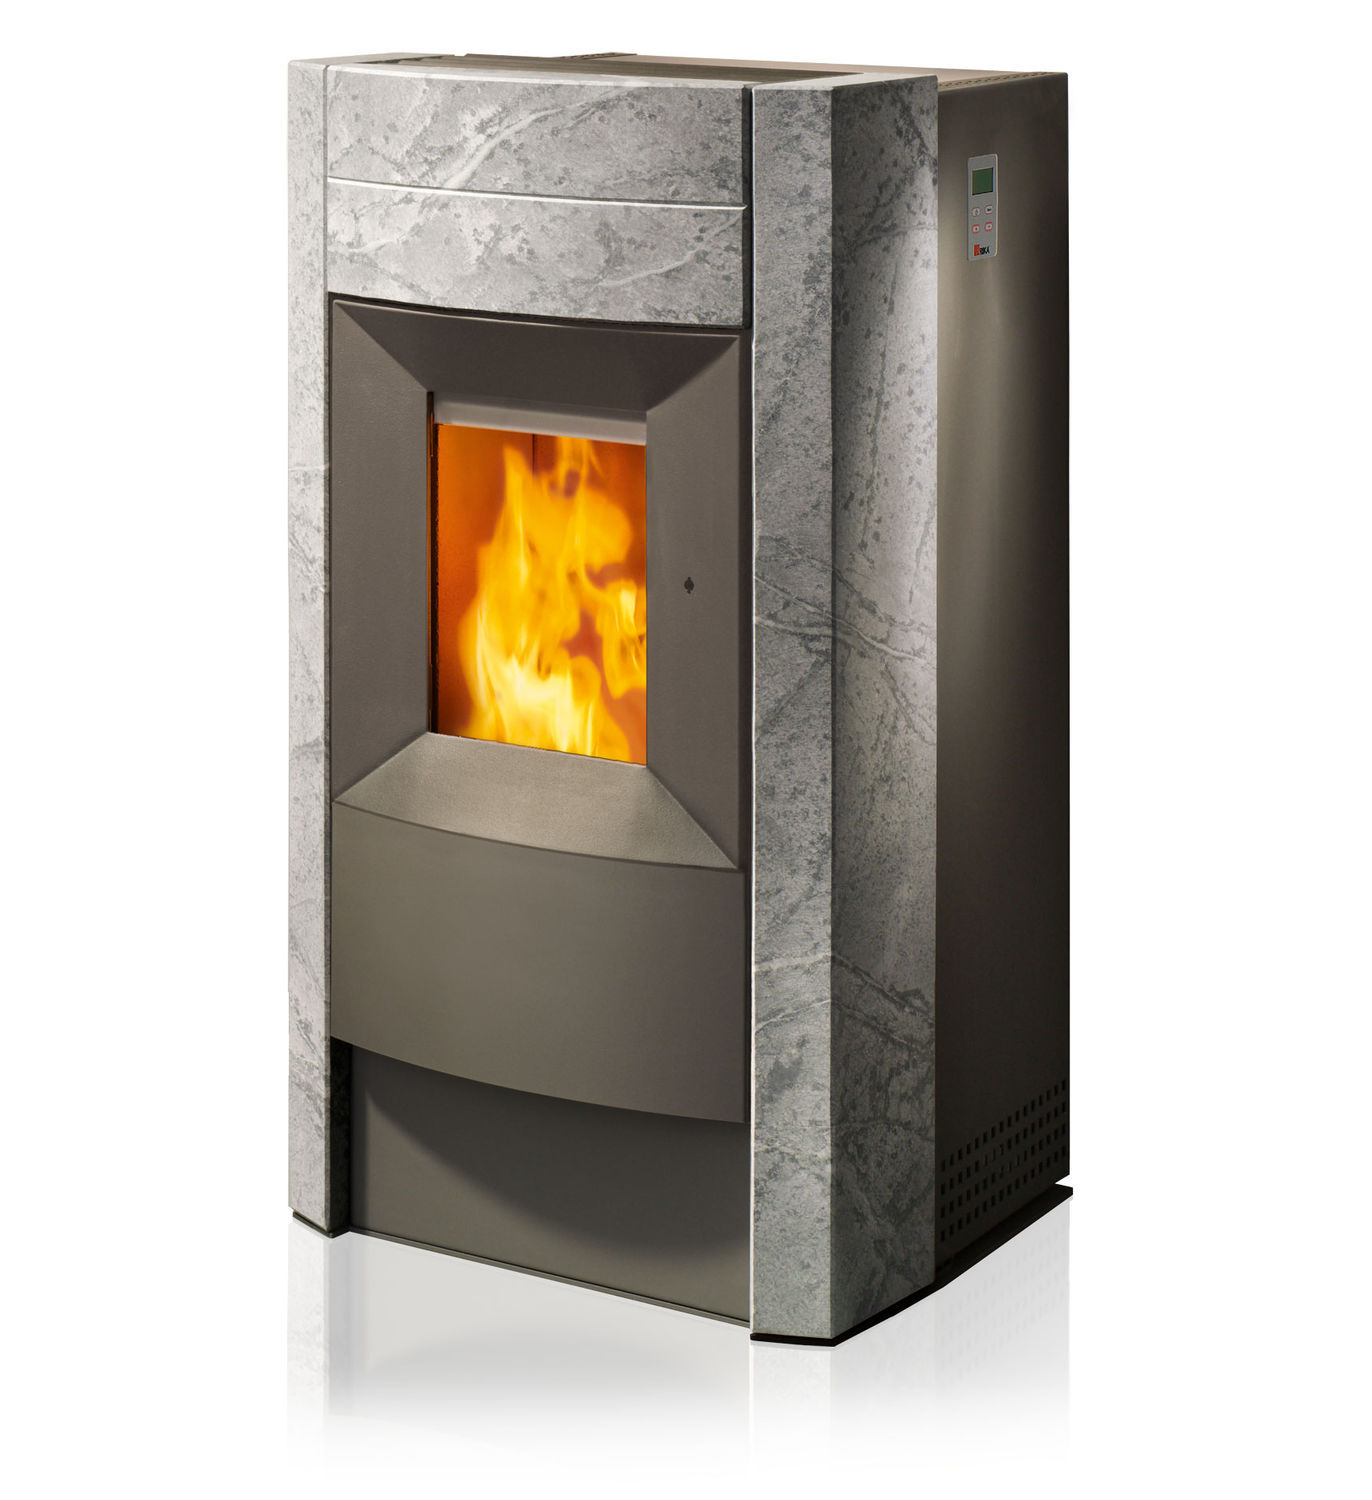 Poele A Granule Rika Domo pellet heating stove / steel / natural stone / contemporary